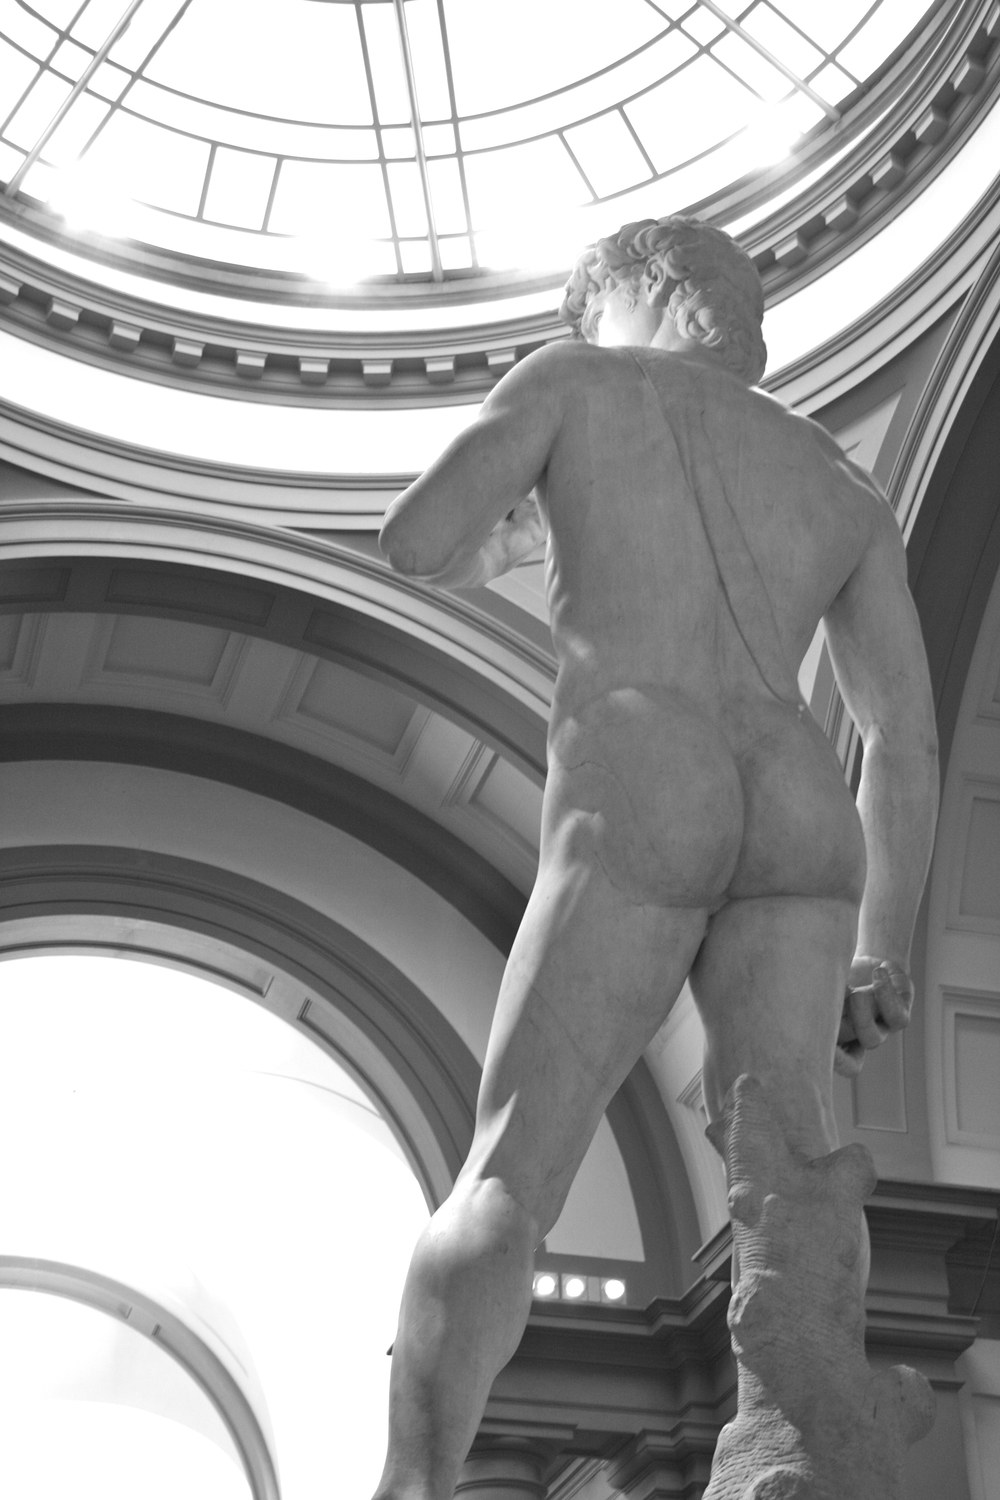 Michelangelo's magnificent David at the Galleria dell'Accademia in Florence